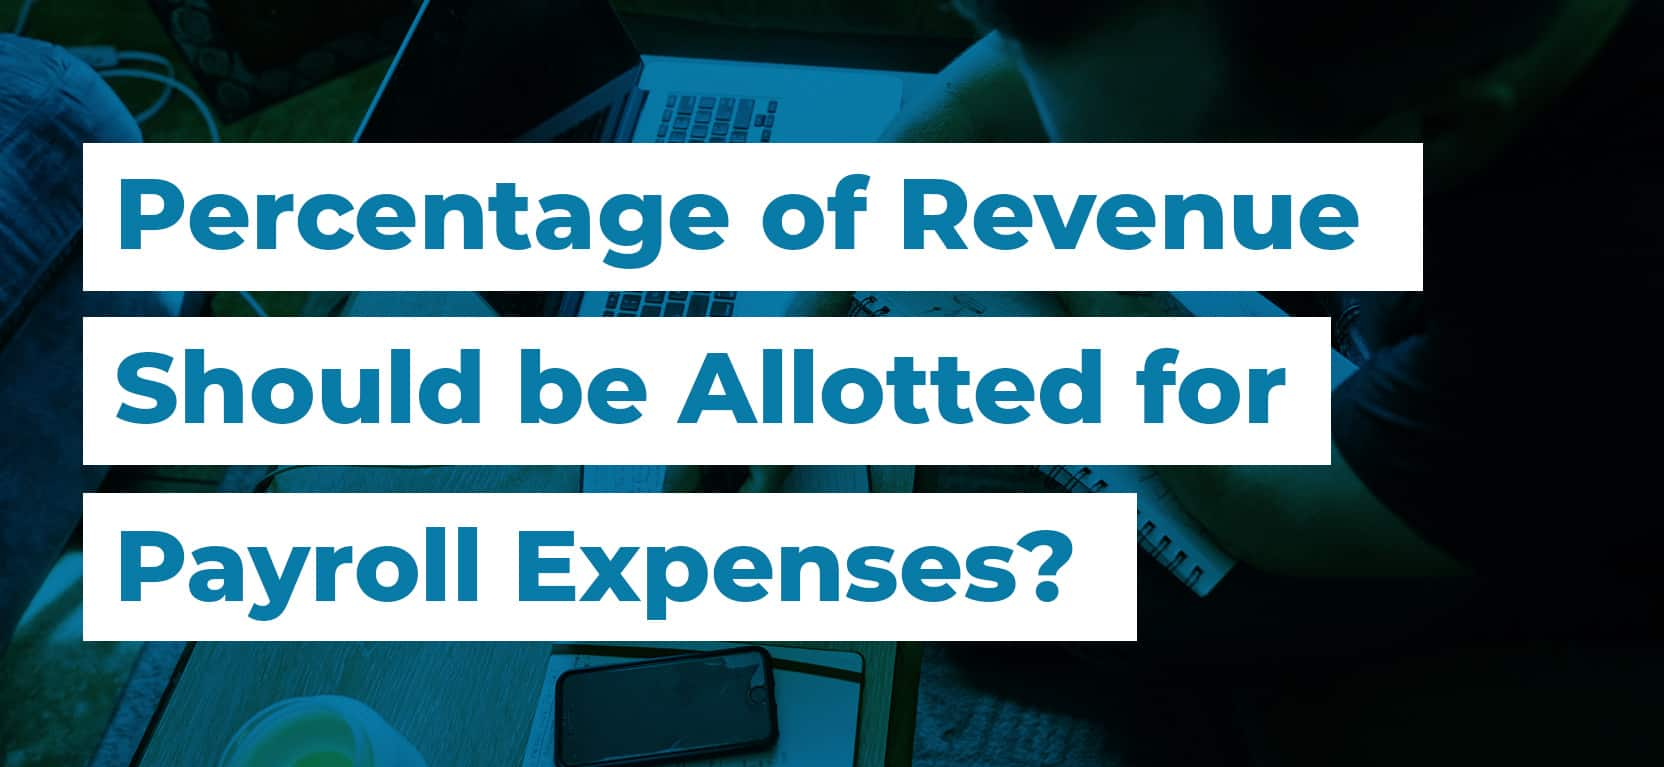 35 Percentage of Revenue Should be Allotted for Payroll